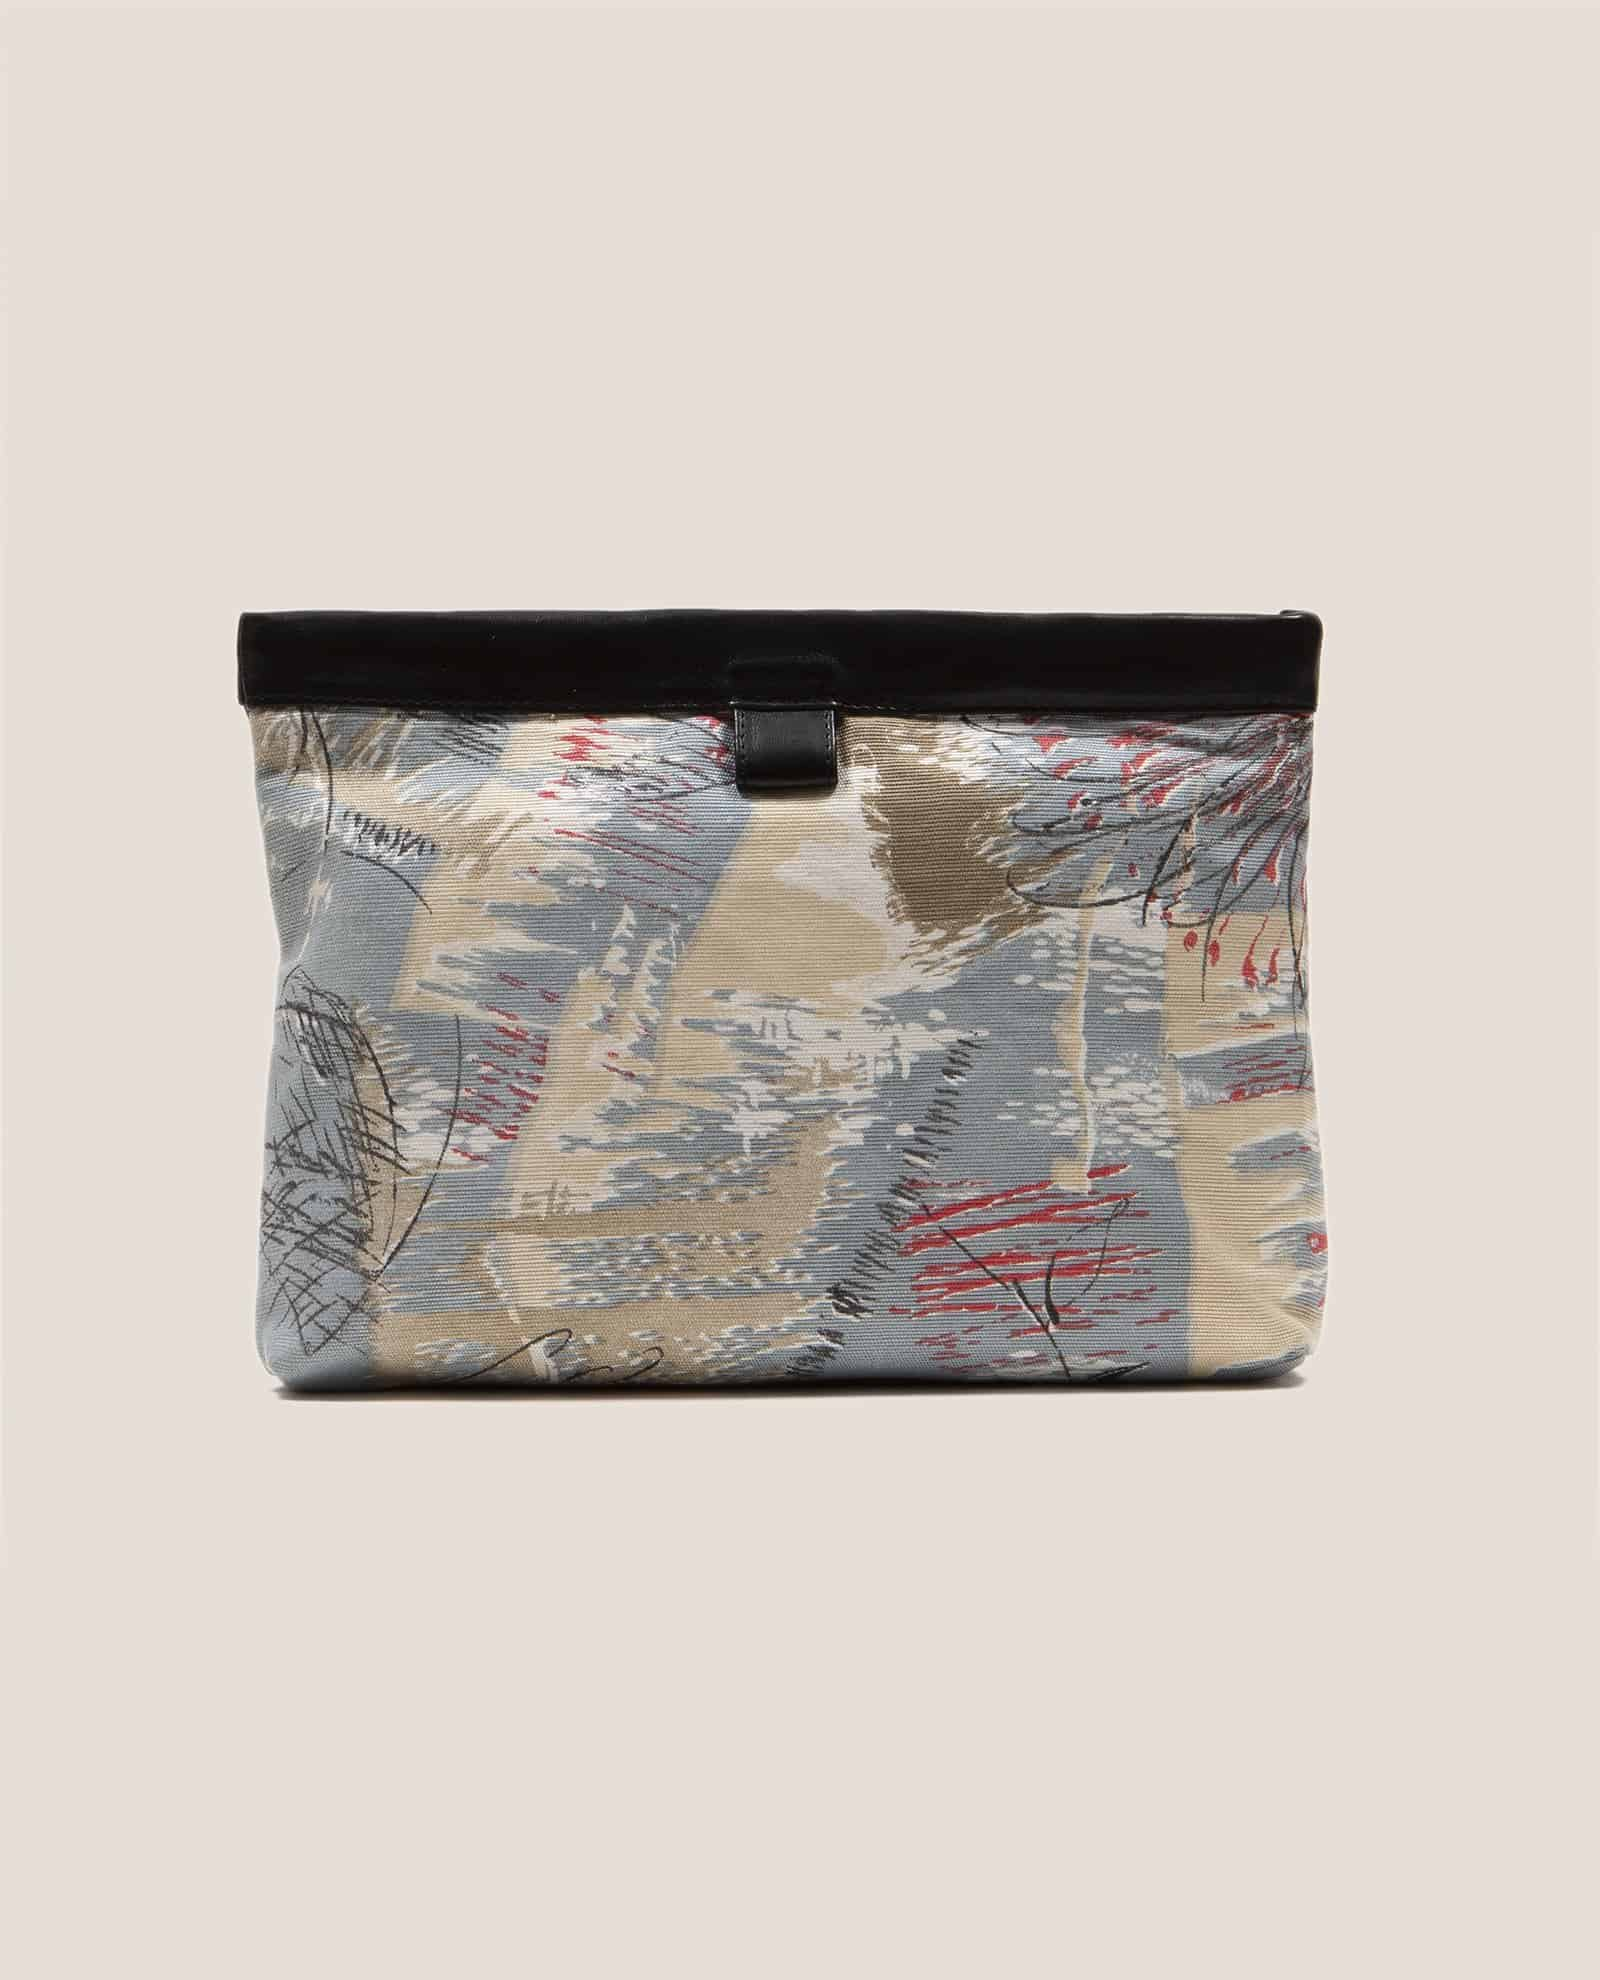 Clutch de Petty Things color negro con tela vintage barkcloth Lex, Marlen Lex